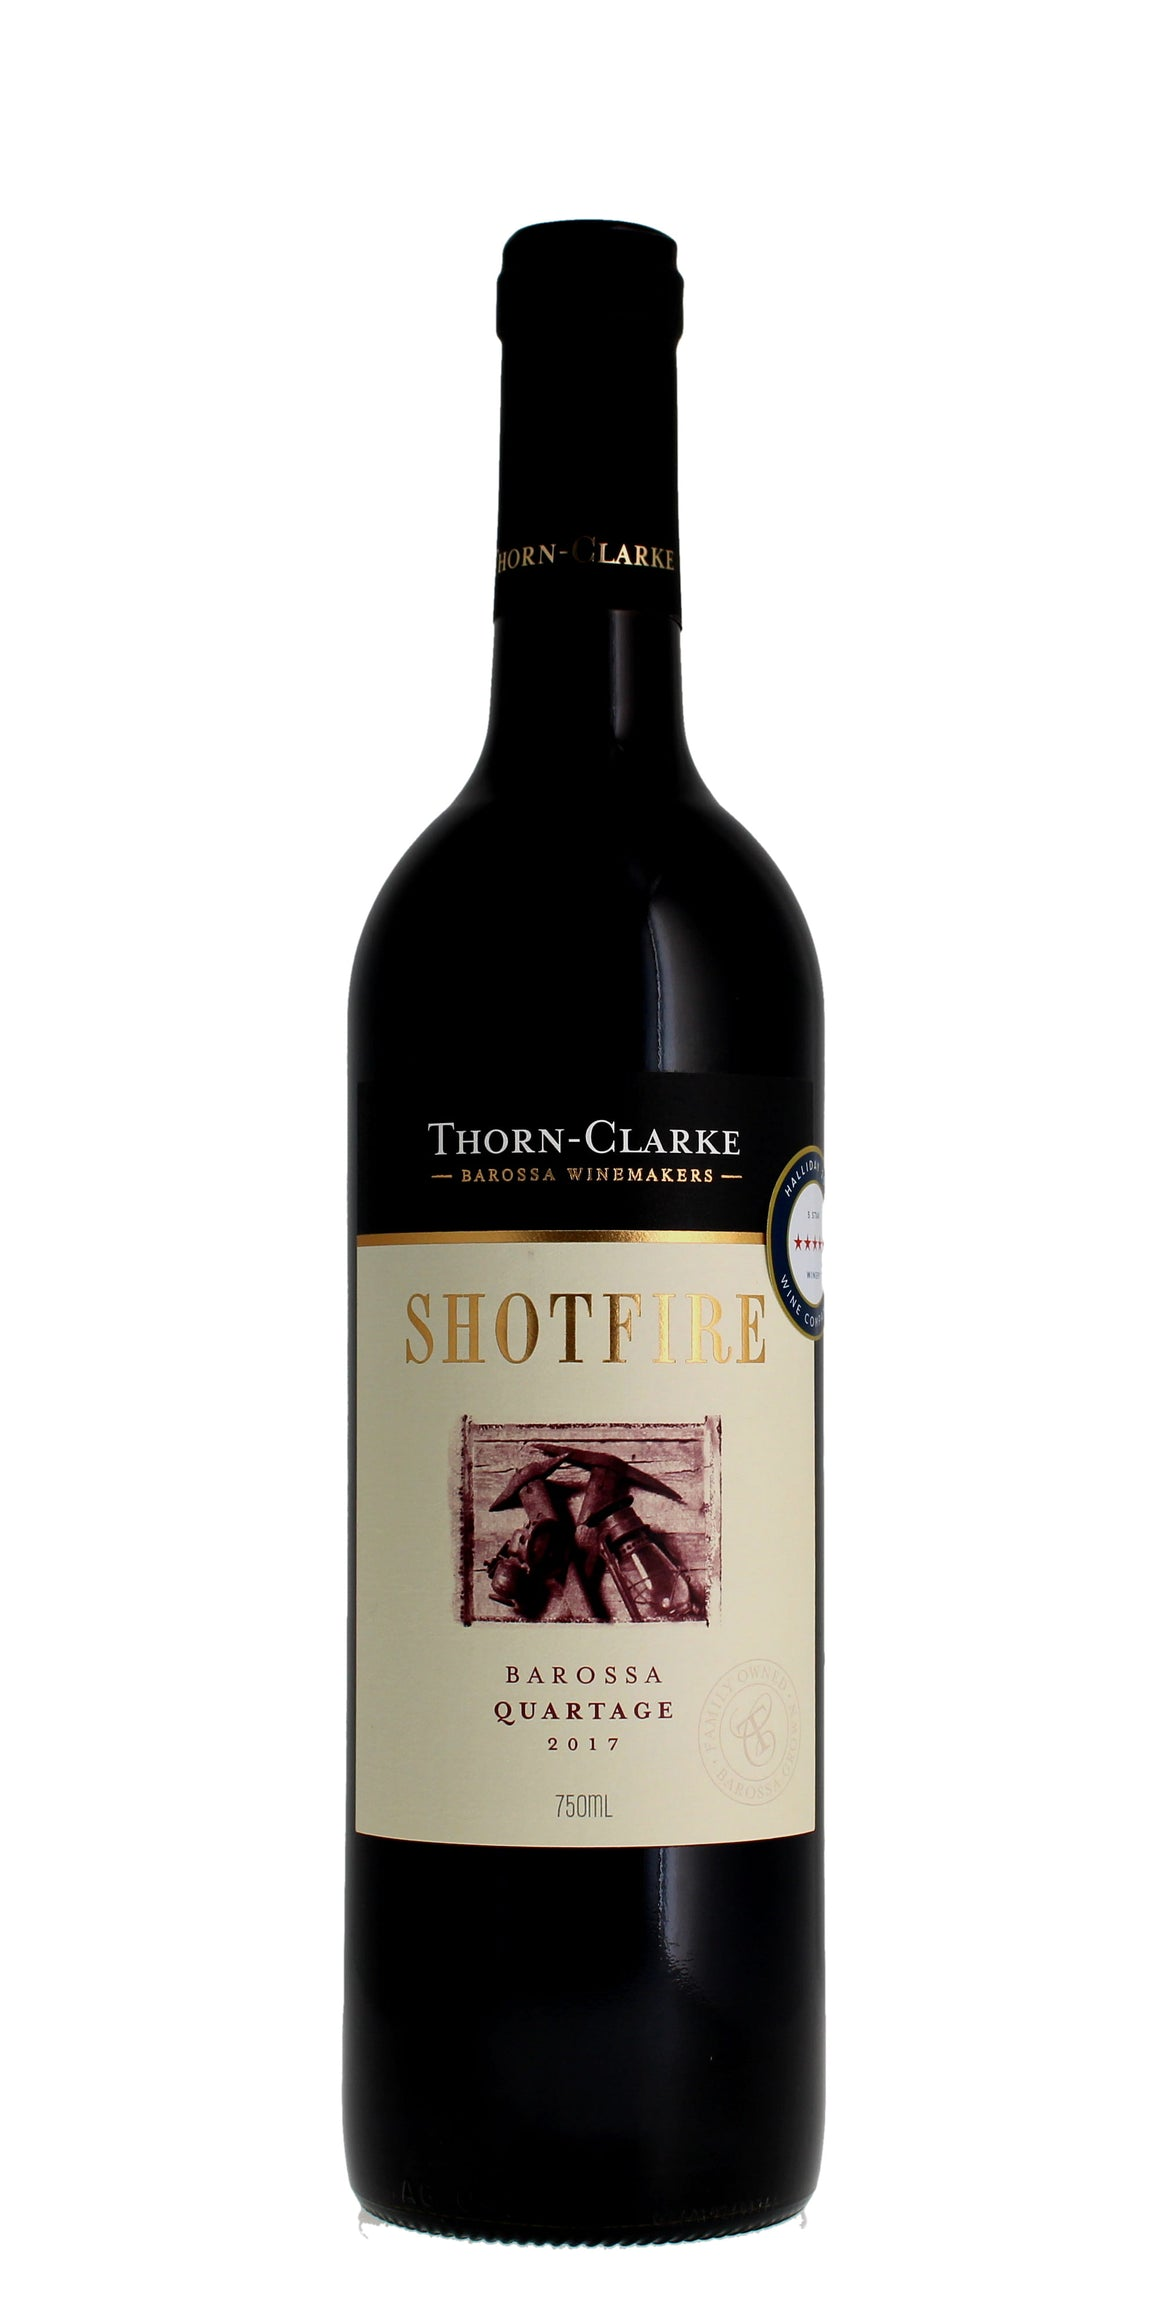 Thorn-Clarke Shotfire Quartage, Barossa Valley 2016